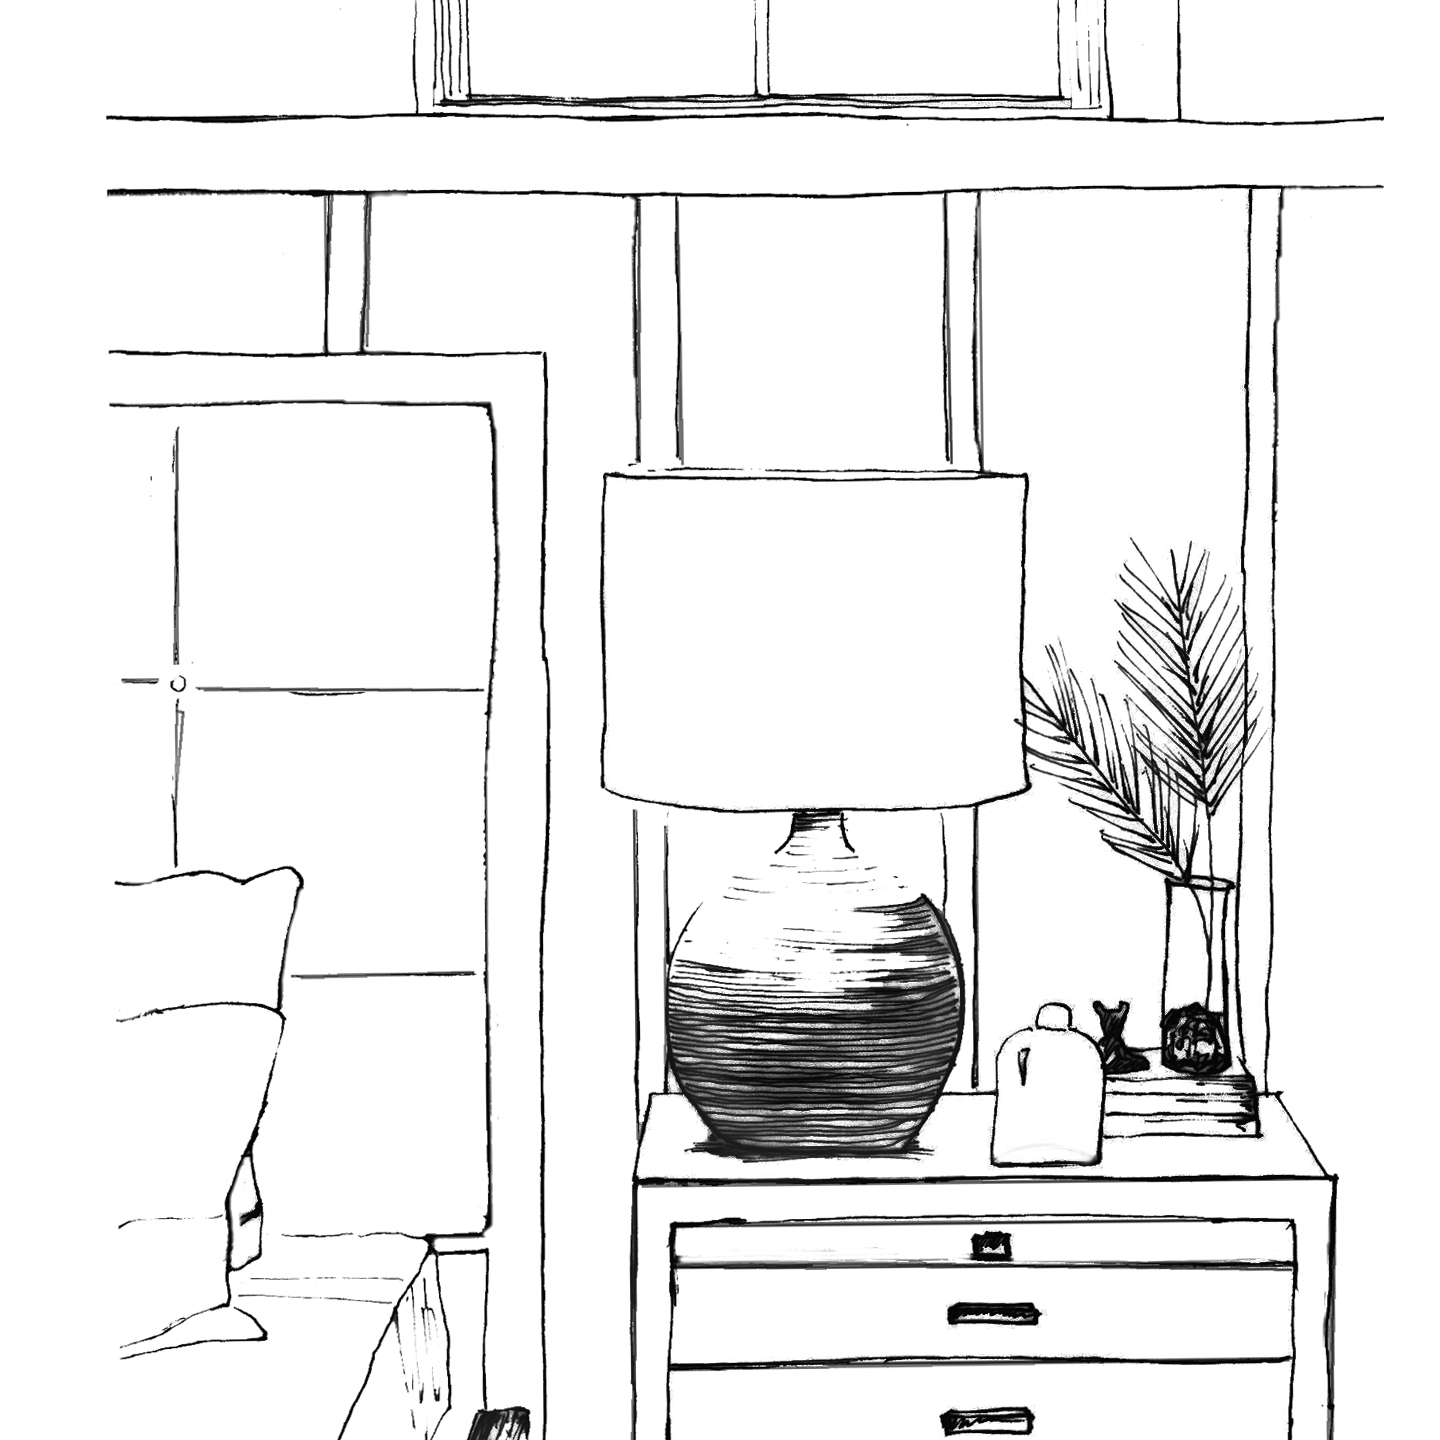 RESIDENTIAL room sketch crop.jpg